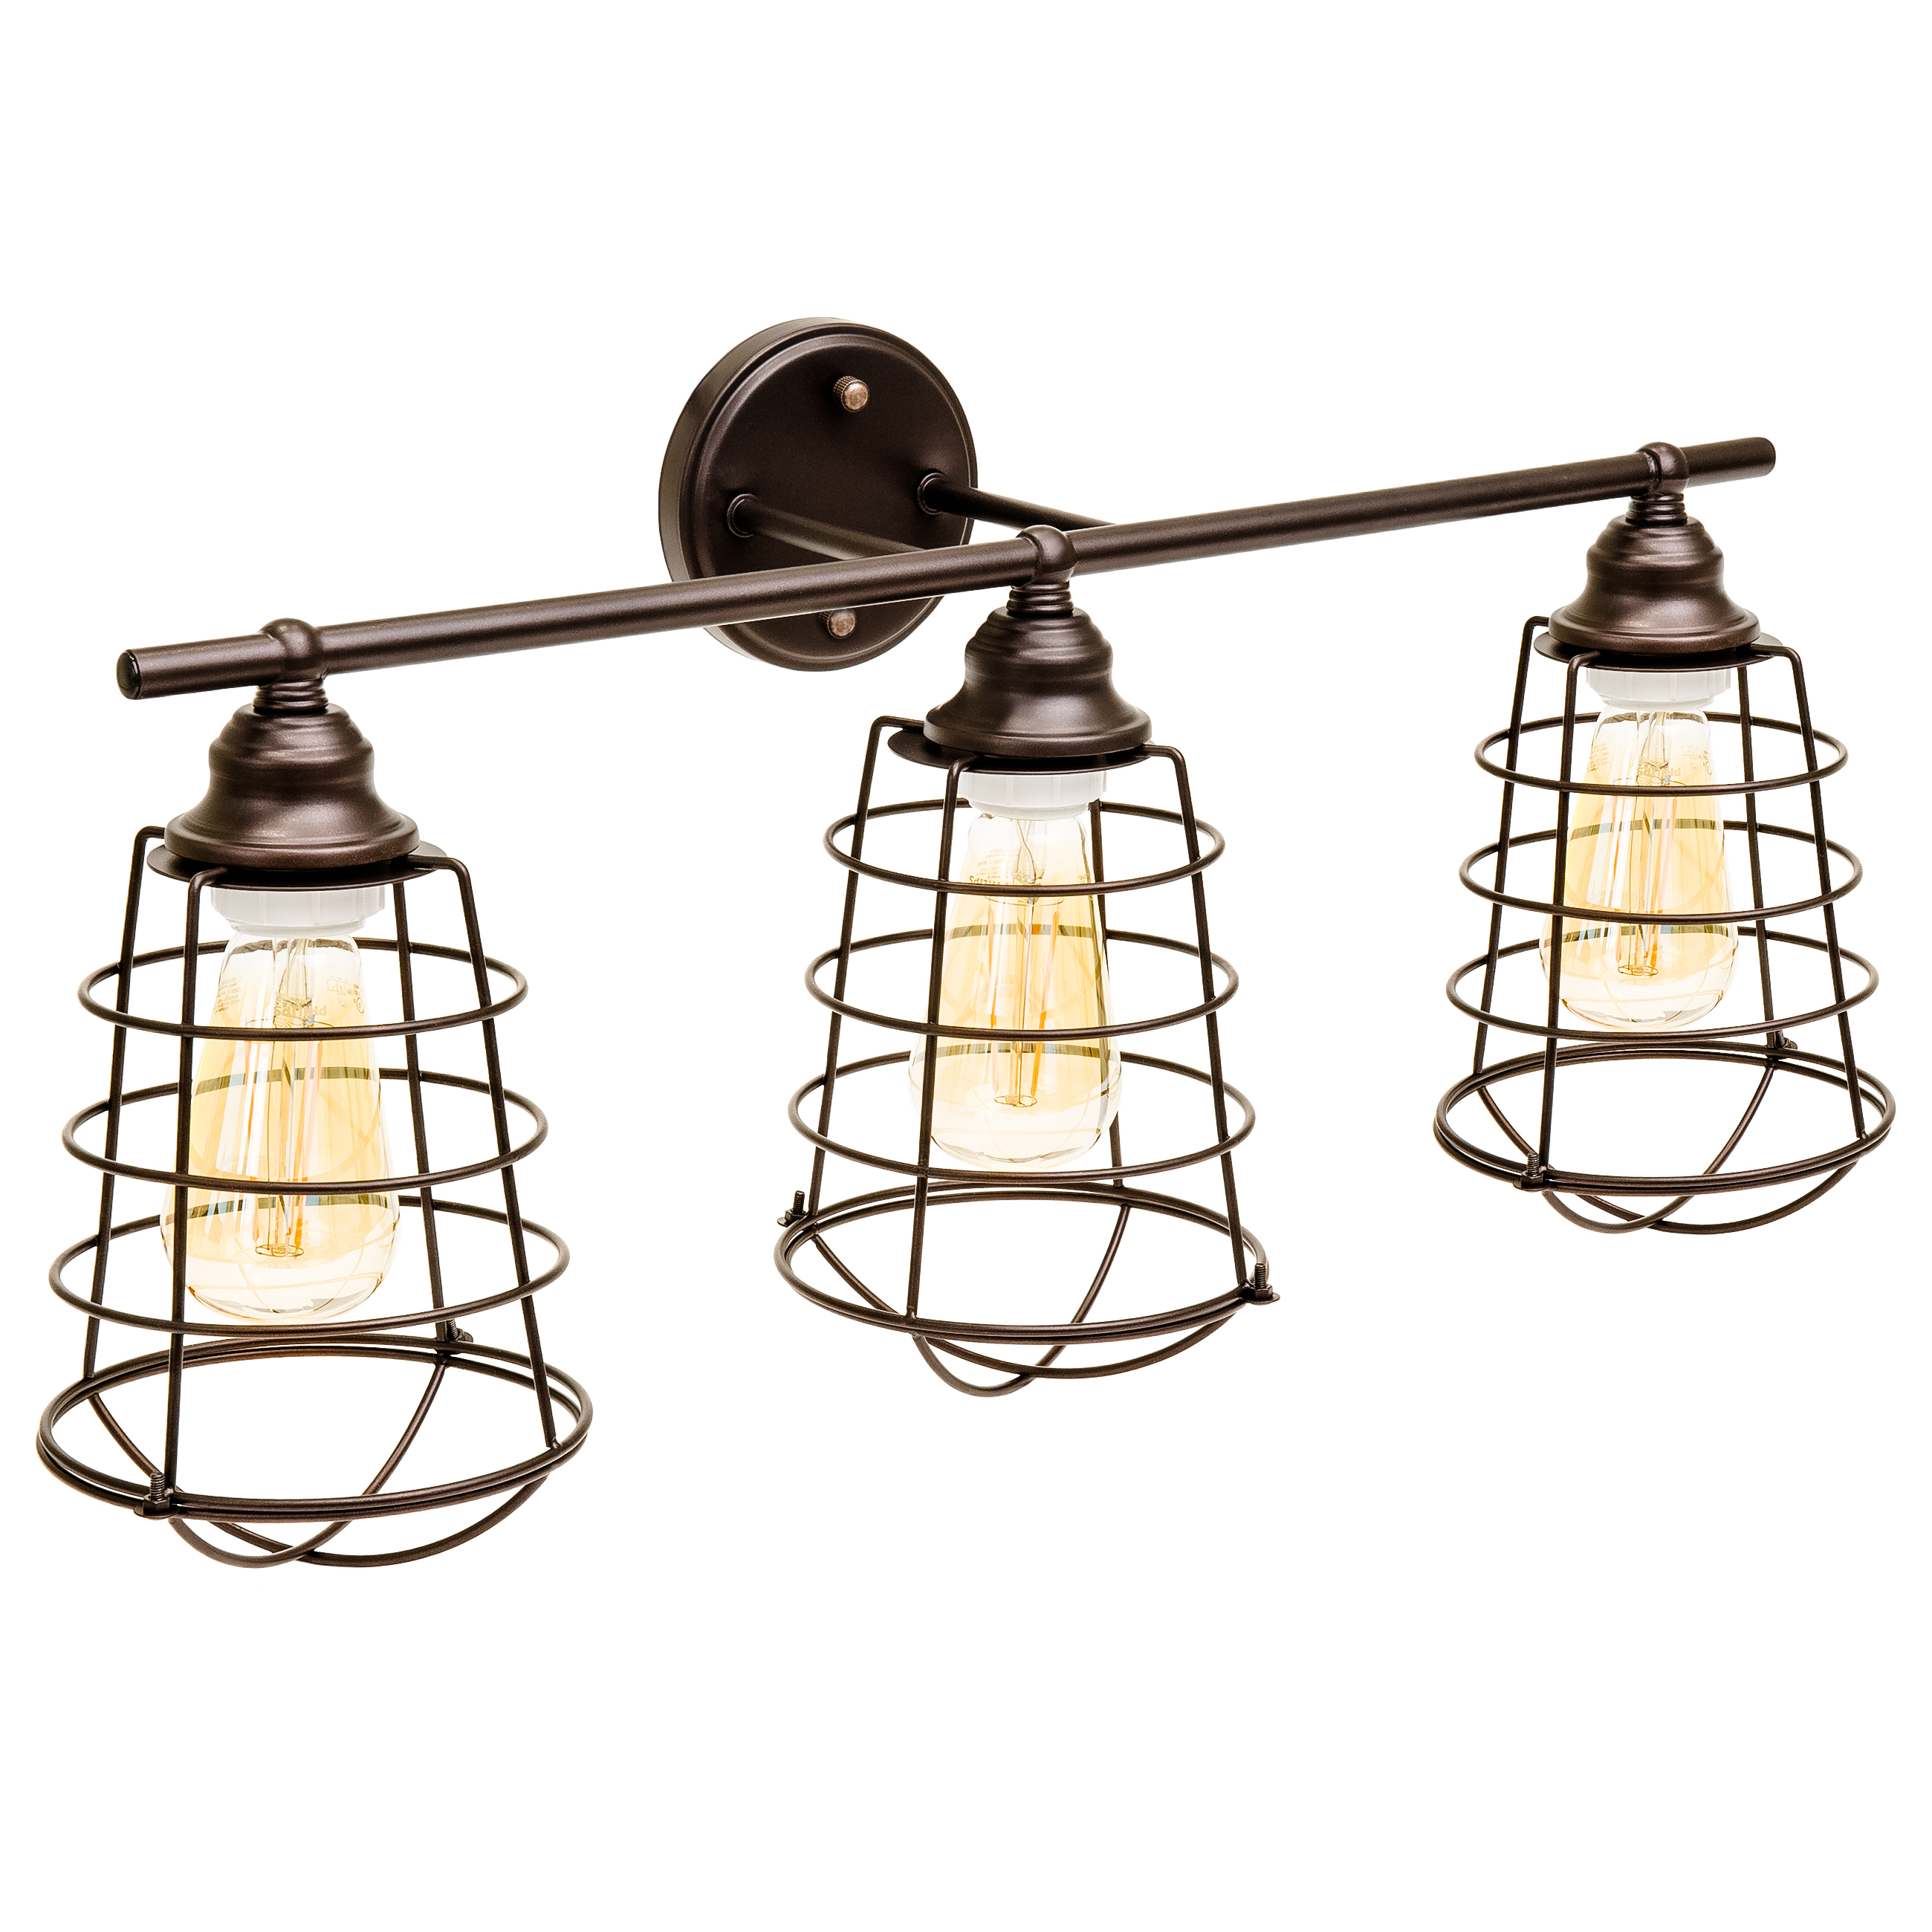 Best Choice Products Industrial Style, 3 Light, Bathroom Vanity Light Fixture (Bronze)